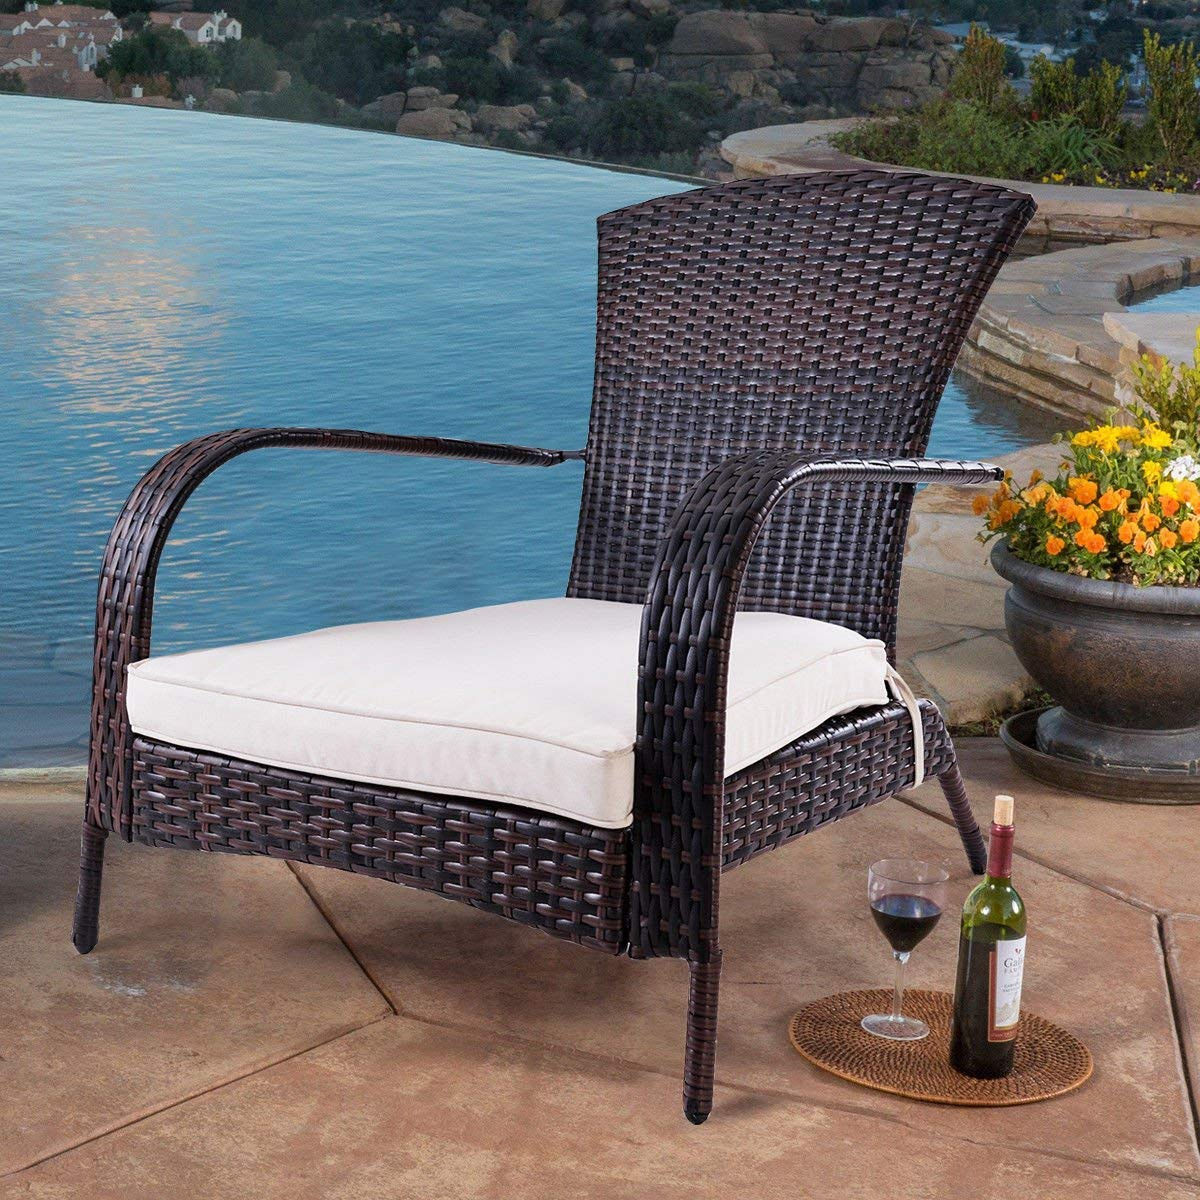 TANGKULA Wicker Adirondack Chair Outdoor Rattan Patio Porch Deck All Weather Furniture with Beige Seat Cushion Wicker Chair Lounger Chaise(Small with Beige Cushion) by Tangkula